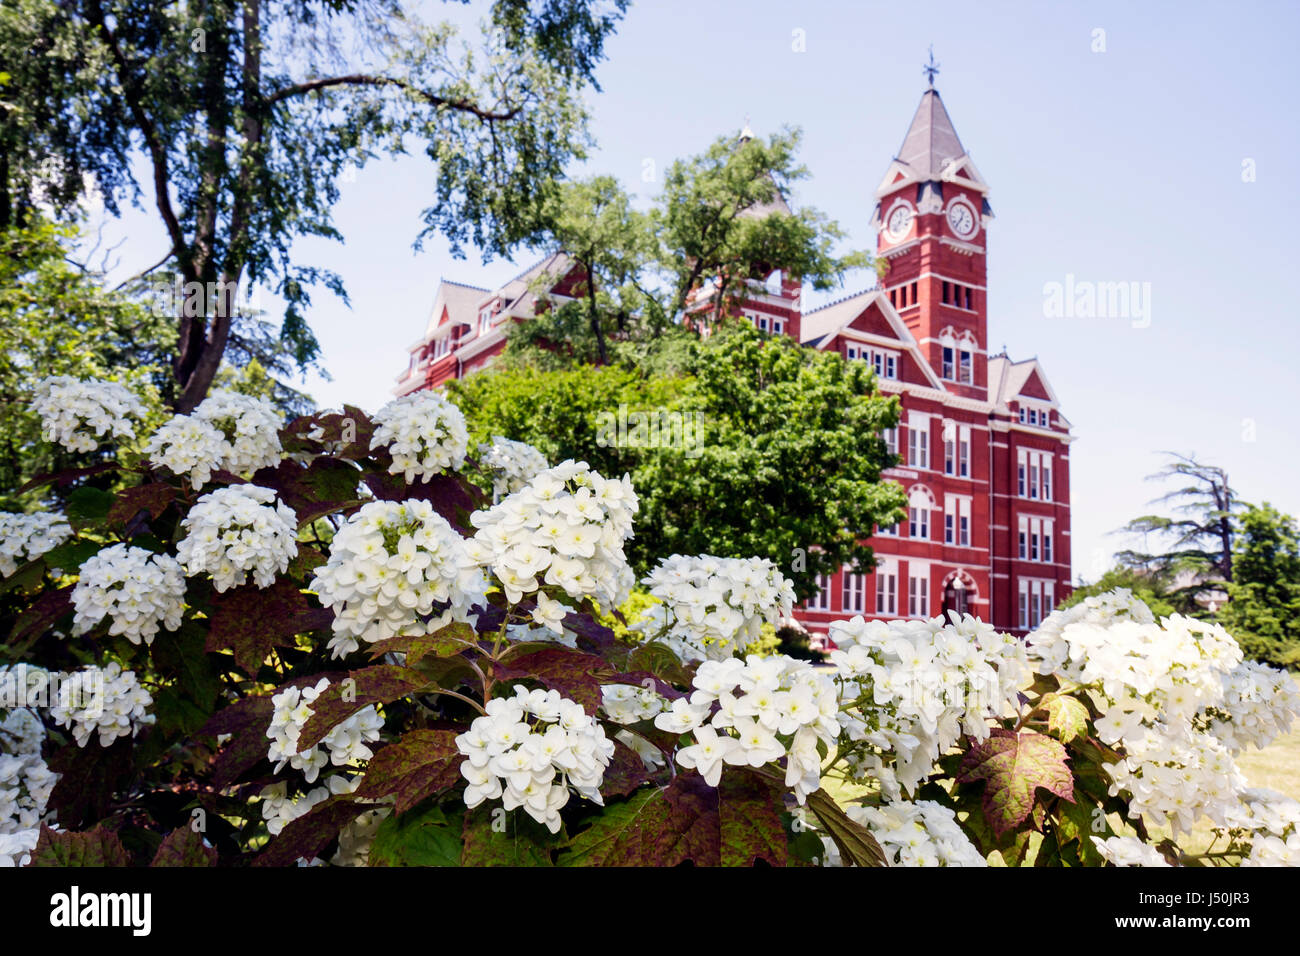 Auburn Alabama Auburn University Samford Hall Clock Tower administration building picturesque grounds campus higher - Stock Image